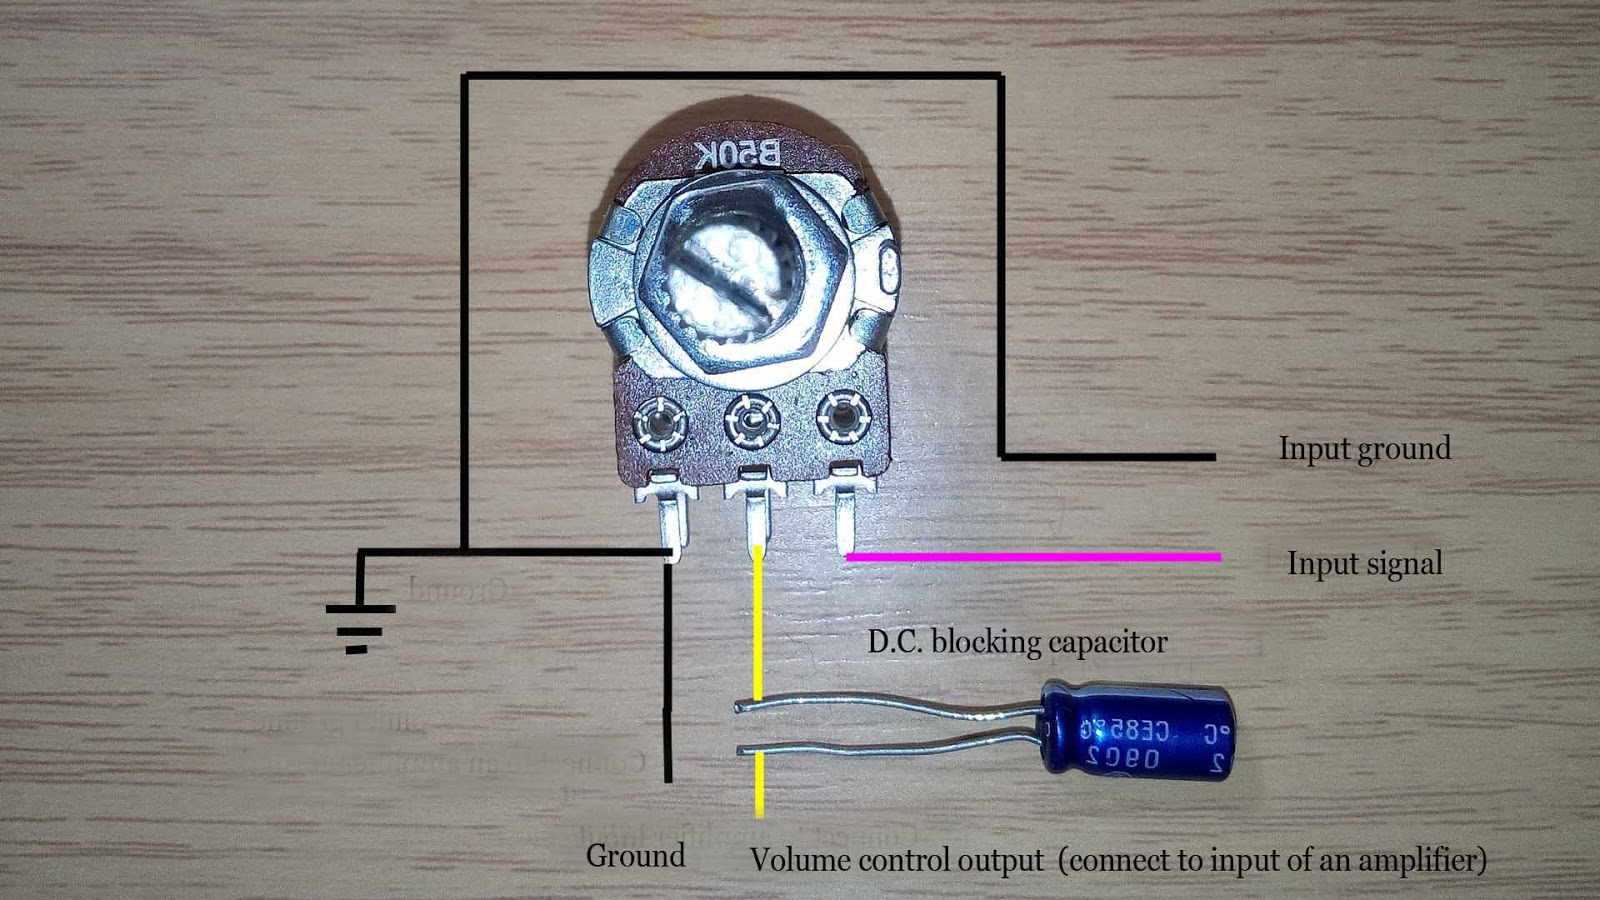 medium resolution of how to connect volume control to an amplifier minute mount 2 wiring diagram volume control diagram